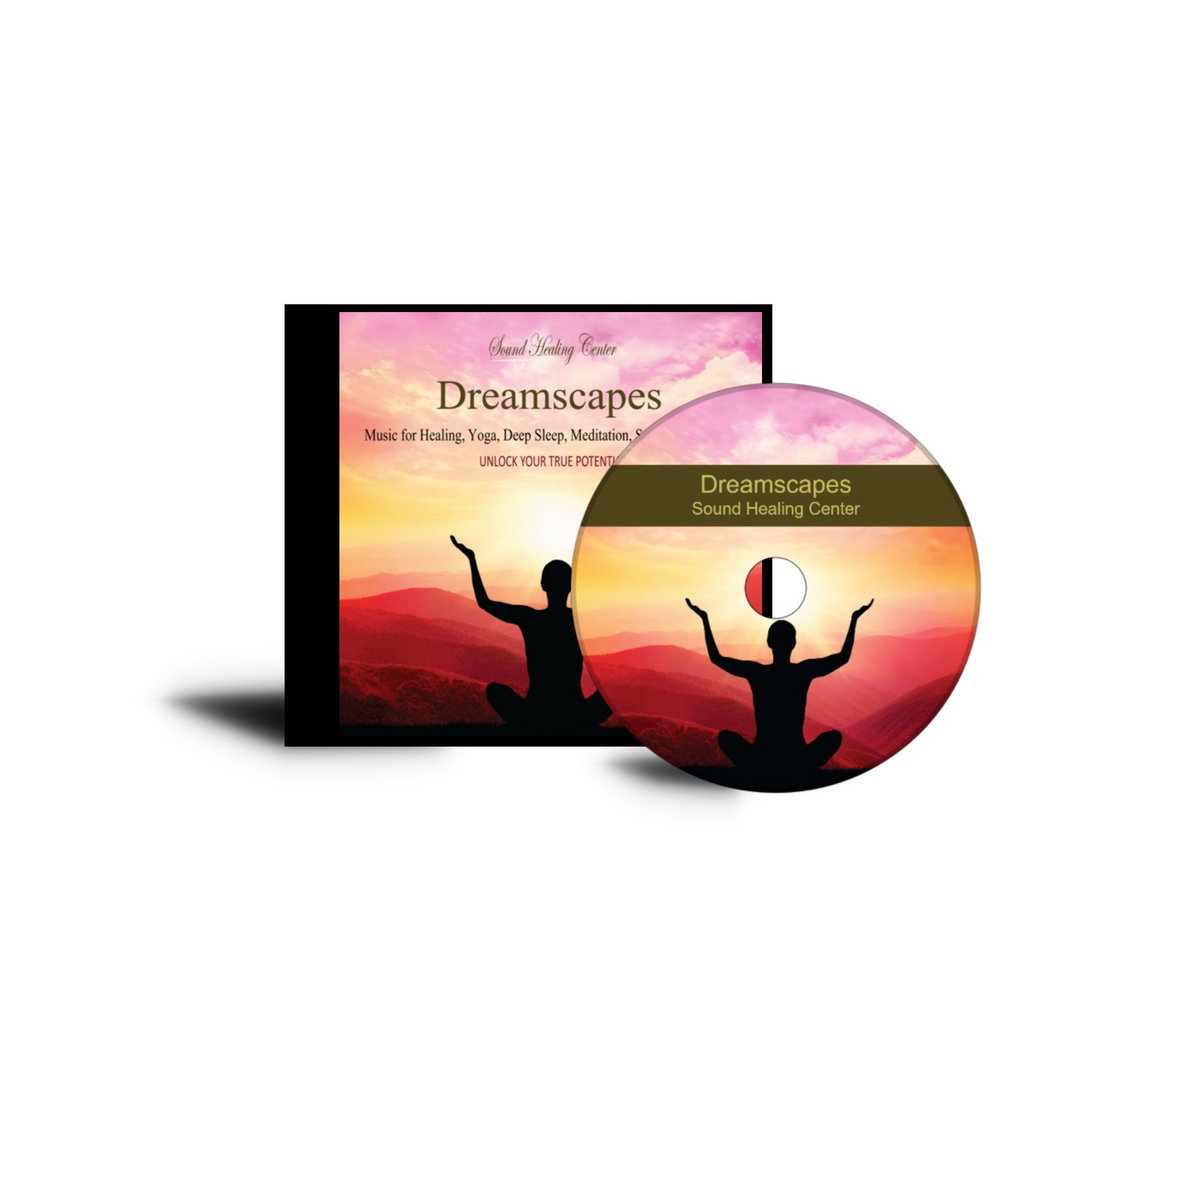 Dreamscapes Music For Healing Yoga Deep Sleep Meditation Spa Relaxation Sound Healing Center Relaxation Meditation Music